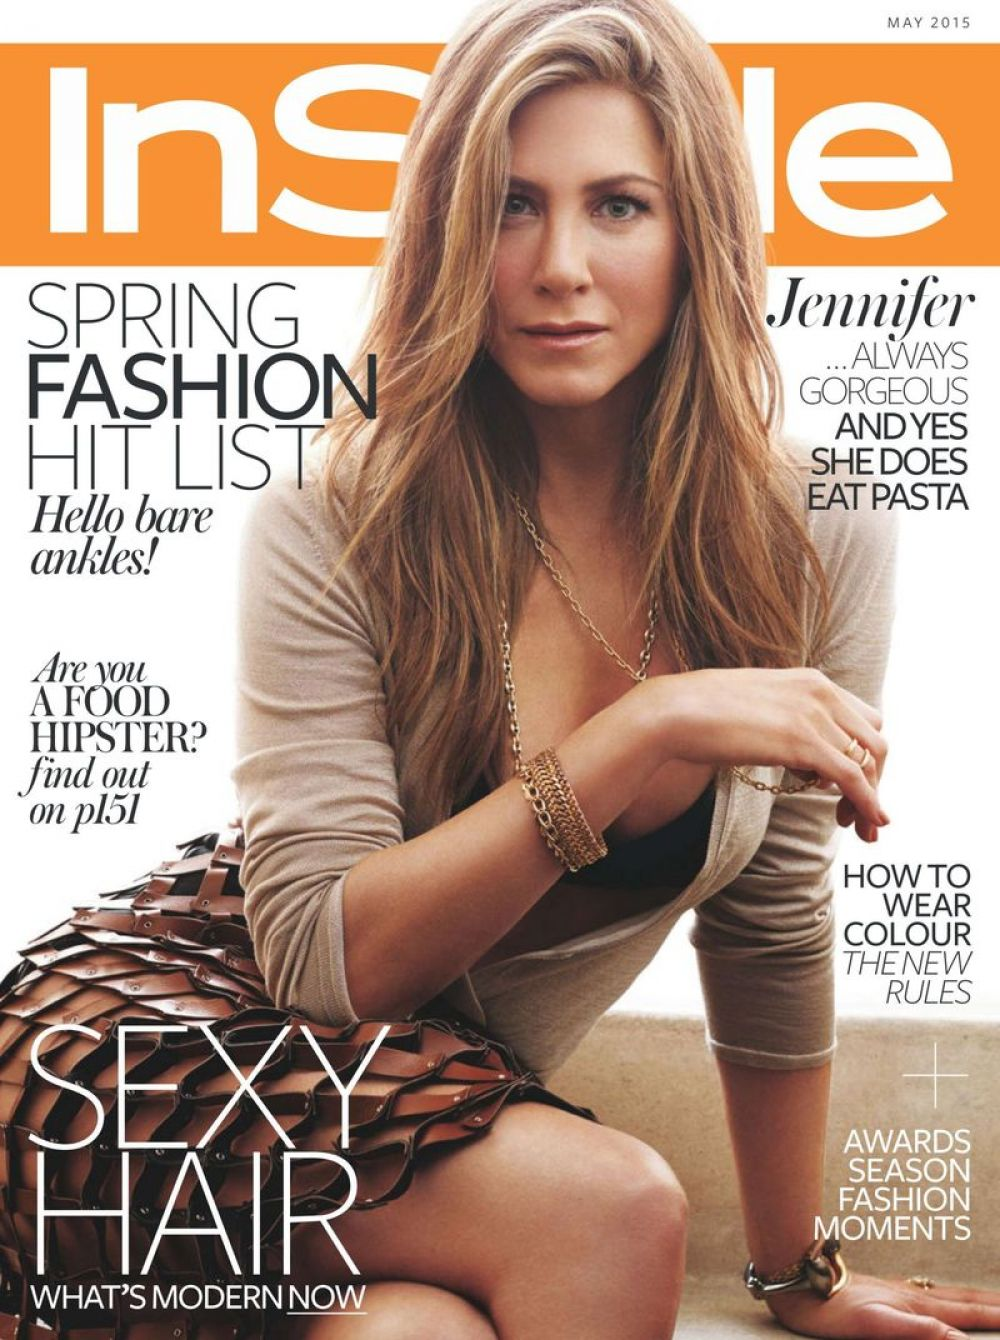 Instyle Magazine Us: JENNIFER ANISTON In Instyle Magazine, UK May 2015 Issue